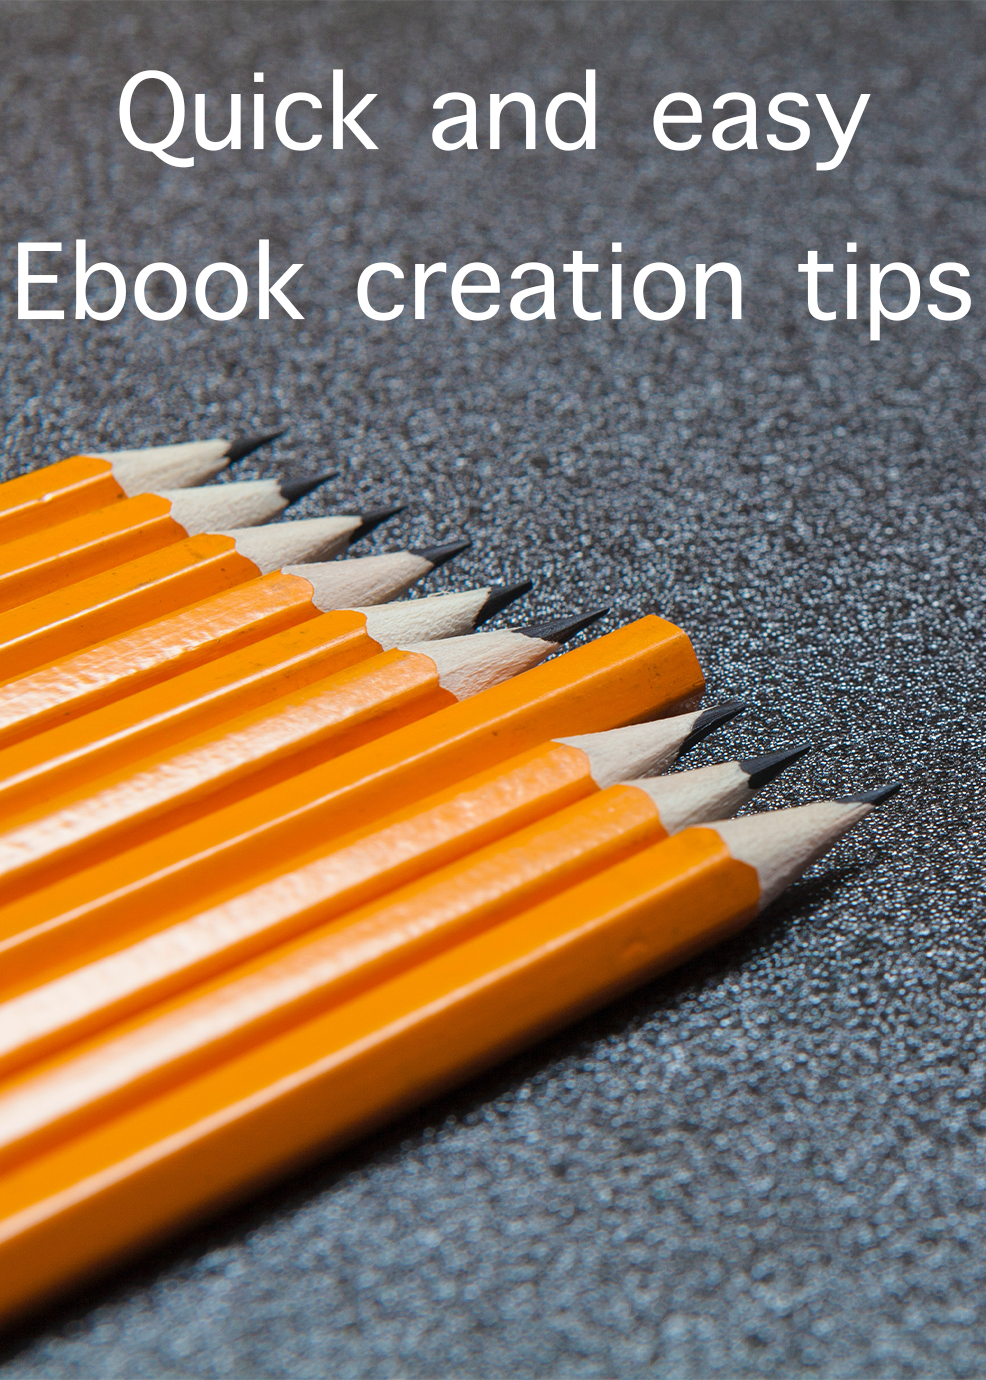 Quick And Easy Ebook Creation Tips